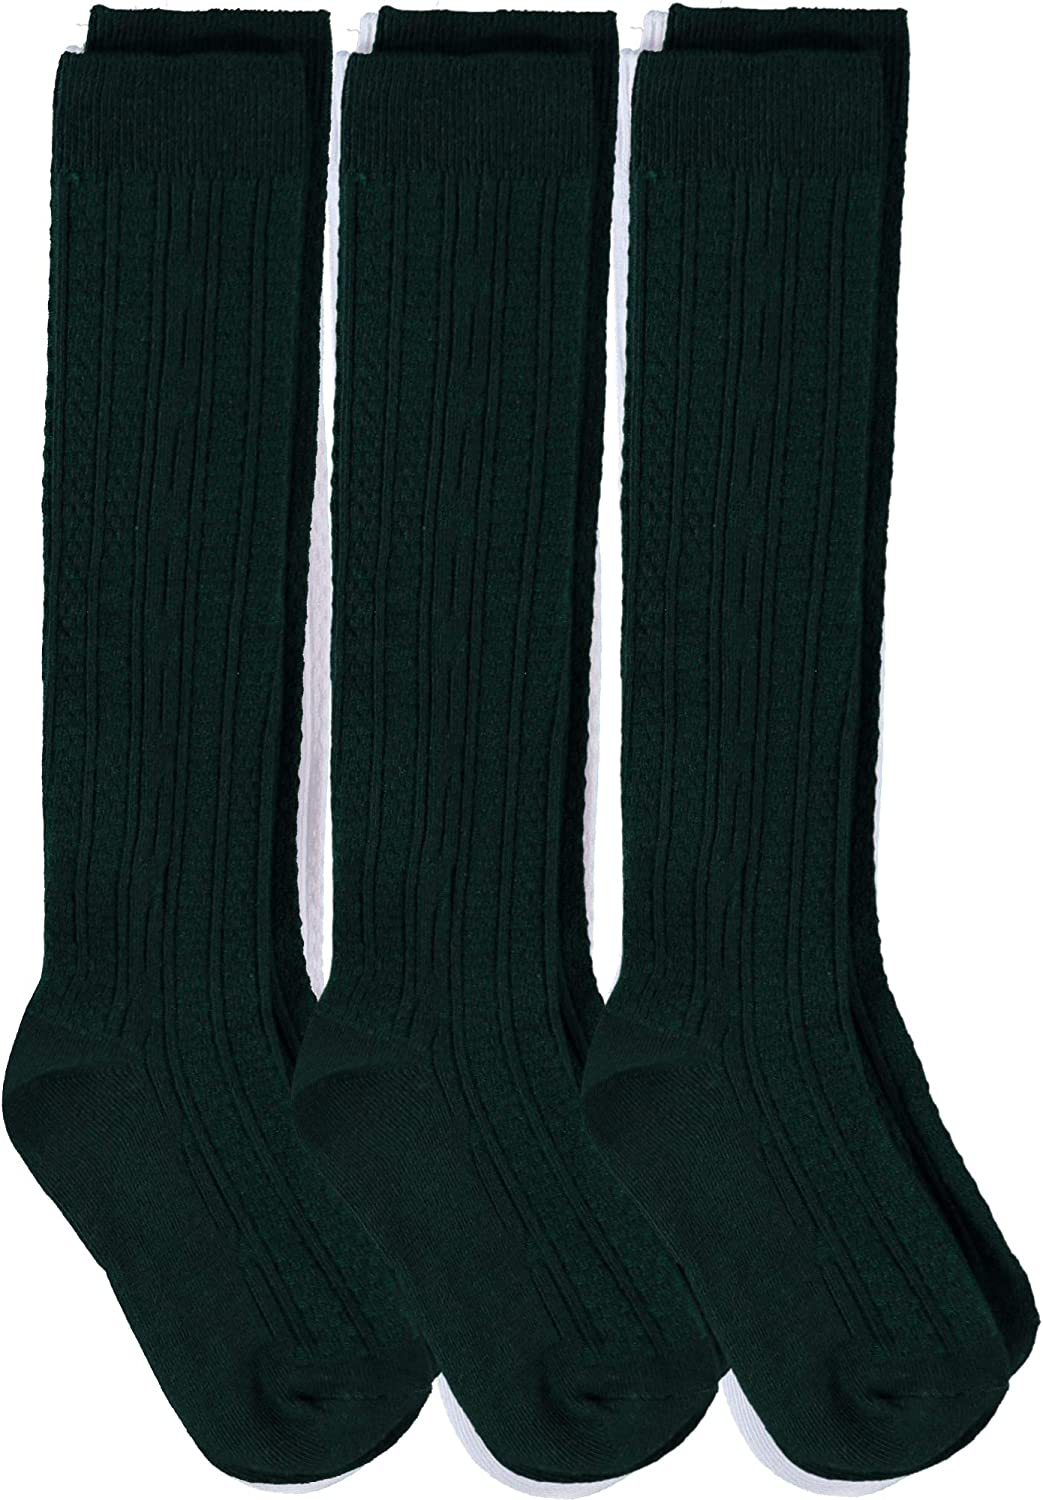 Piccolo Girls' Cable-Knit Knee-High Sock Three-Pack